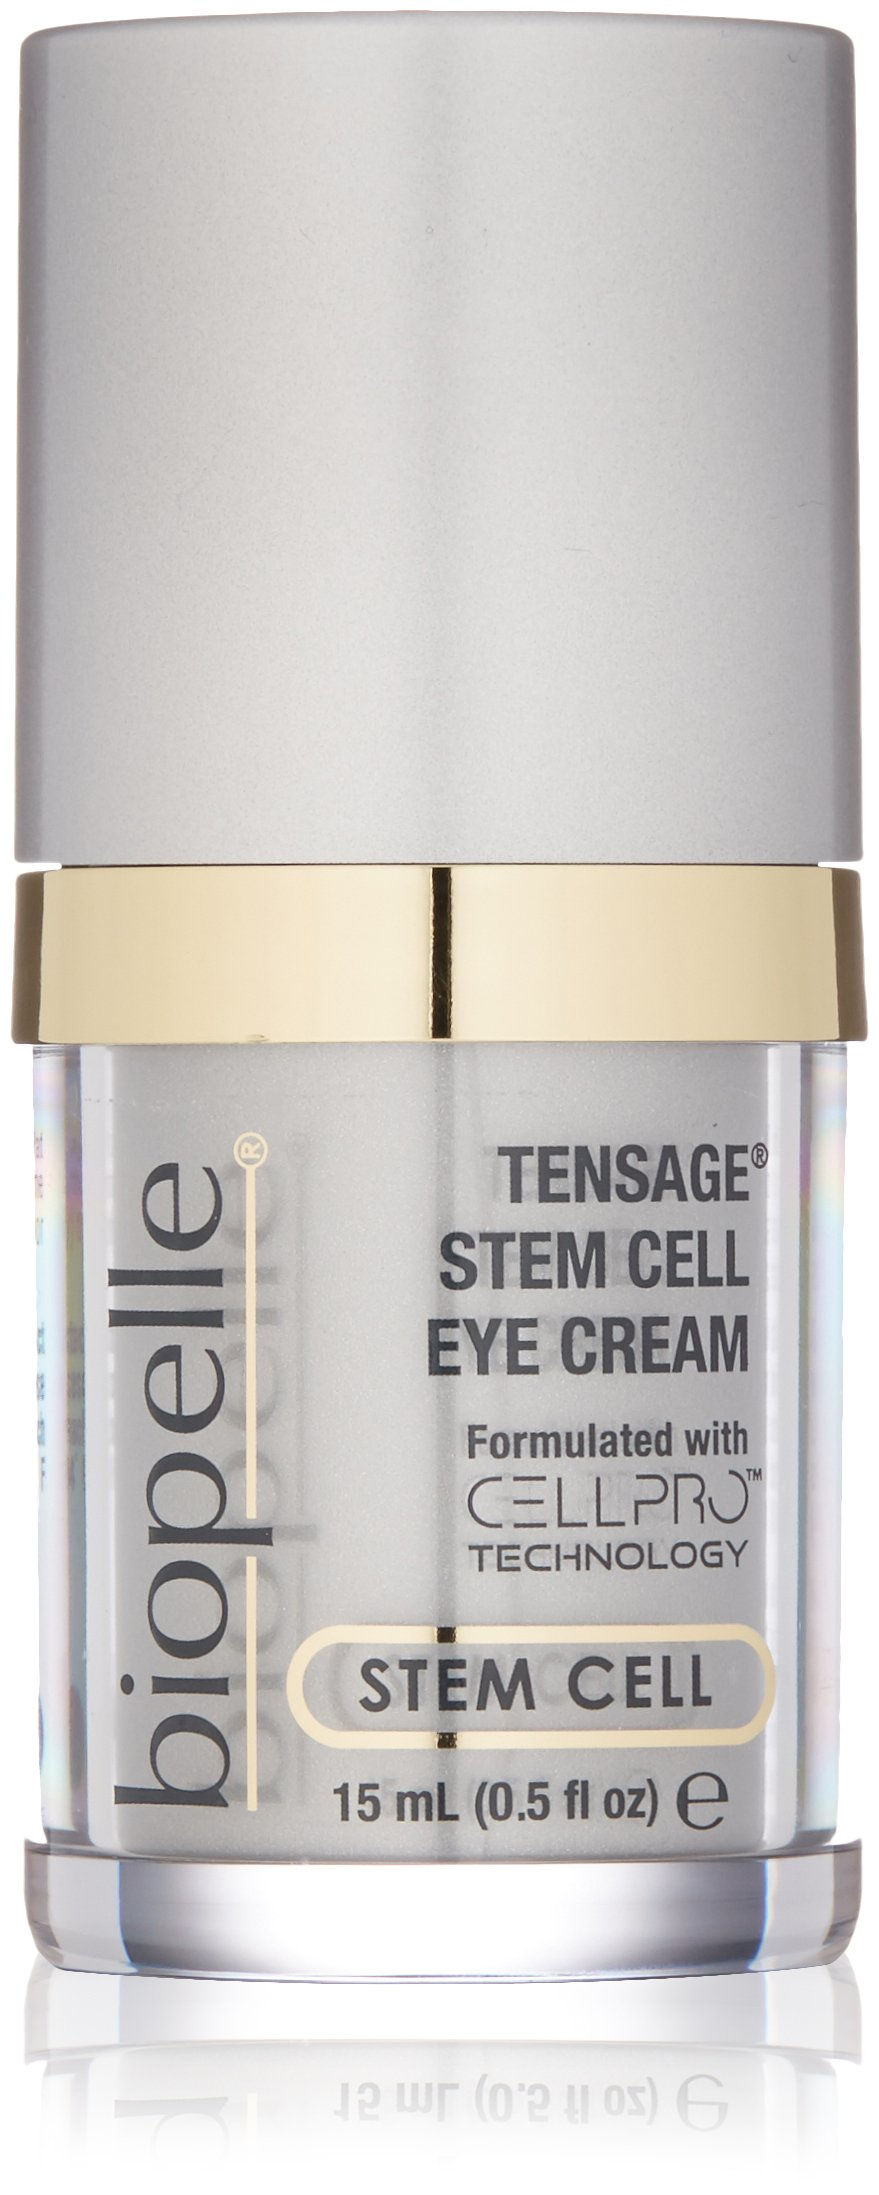 Biopelle Tensage Stem Cell Anti Wrinkle Cream for Eyes by biopelle (Image #1)